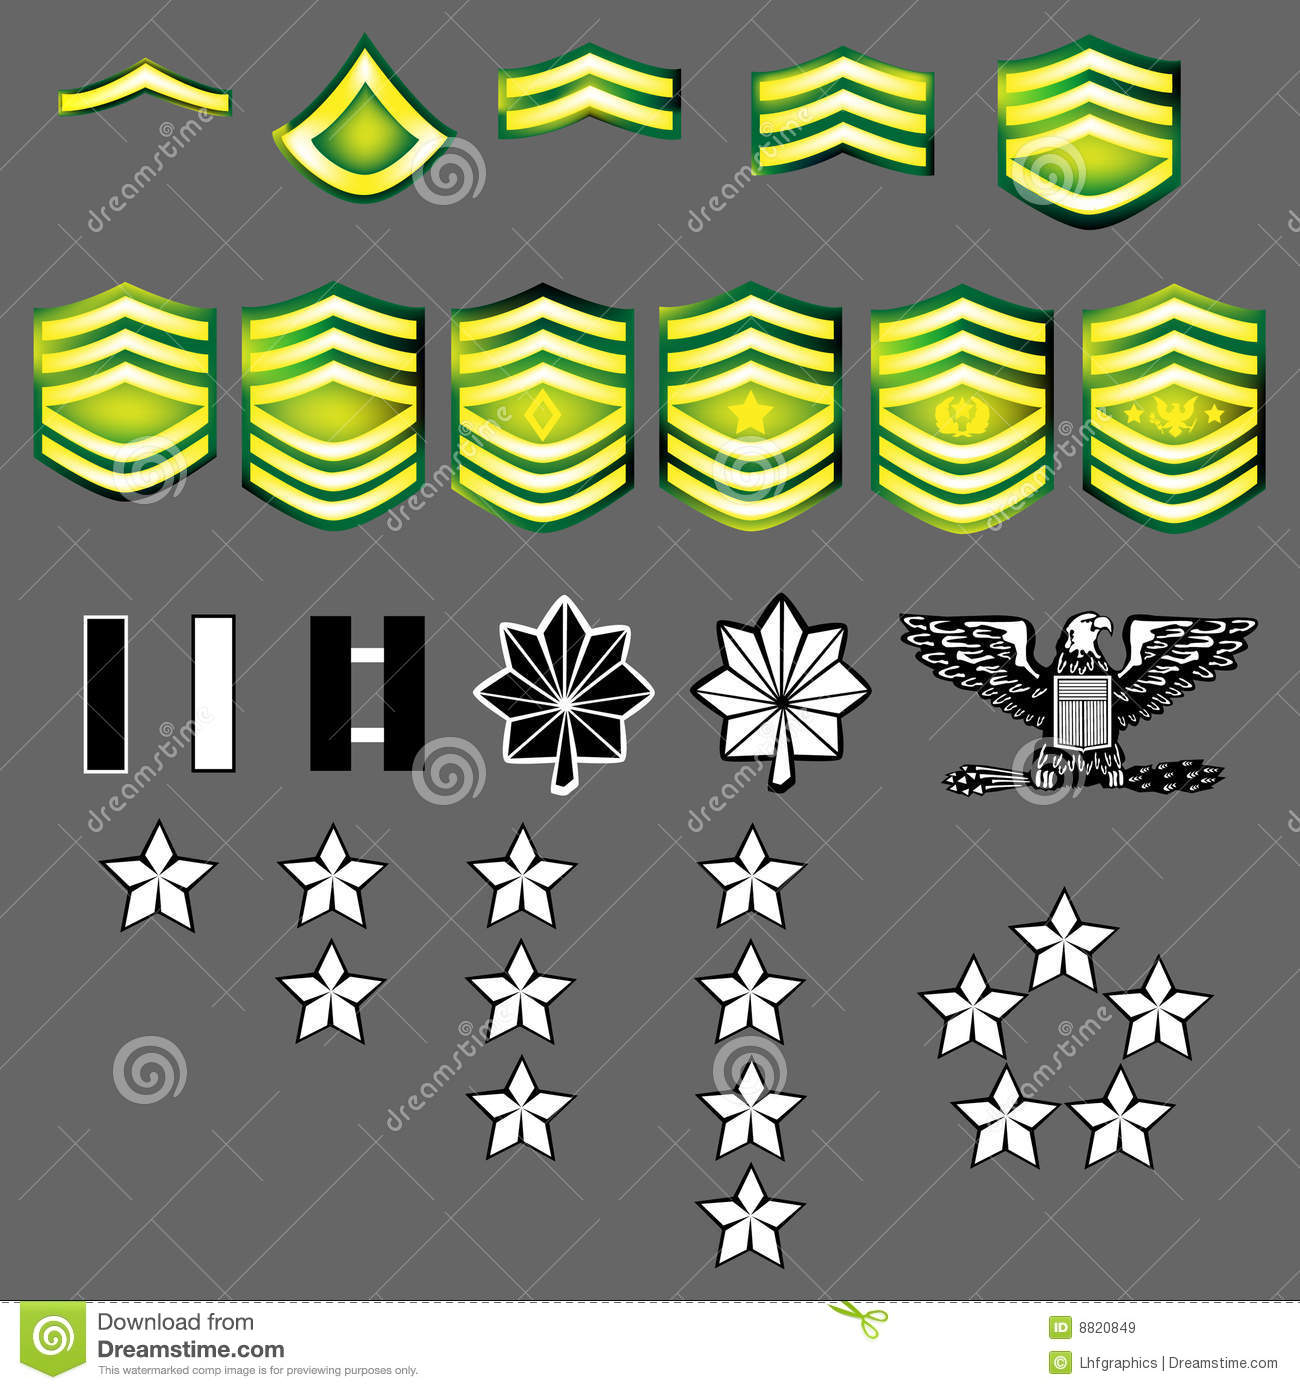 US Army Rank Insignia Stock Vector. Image Of Medal